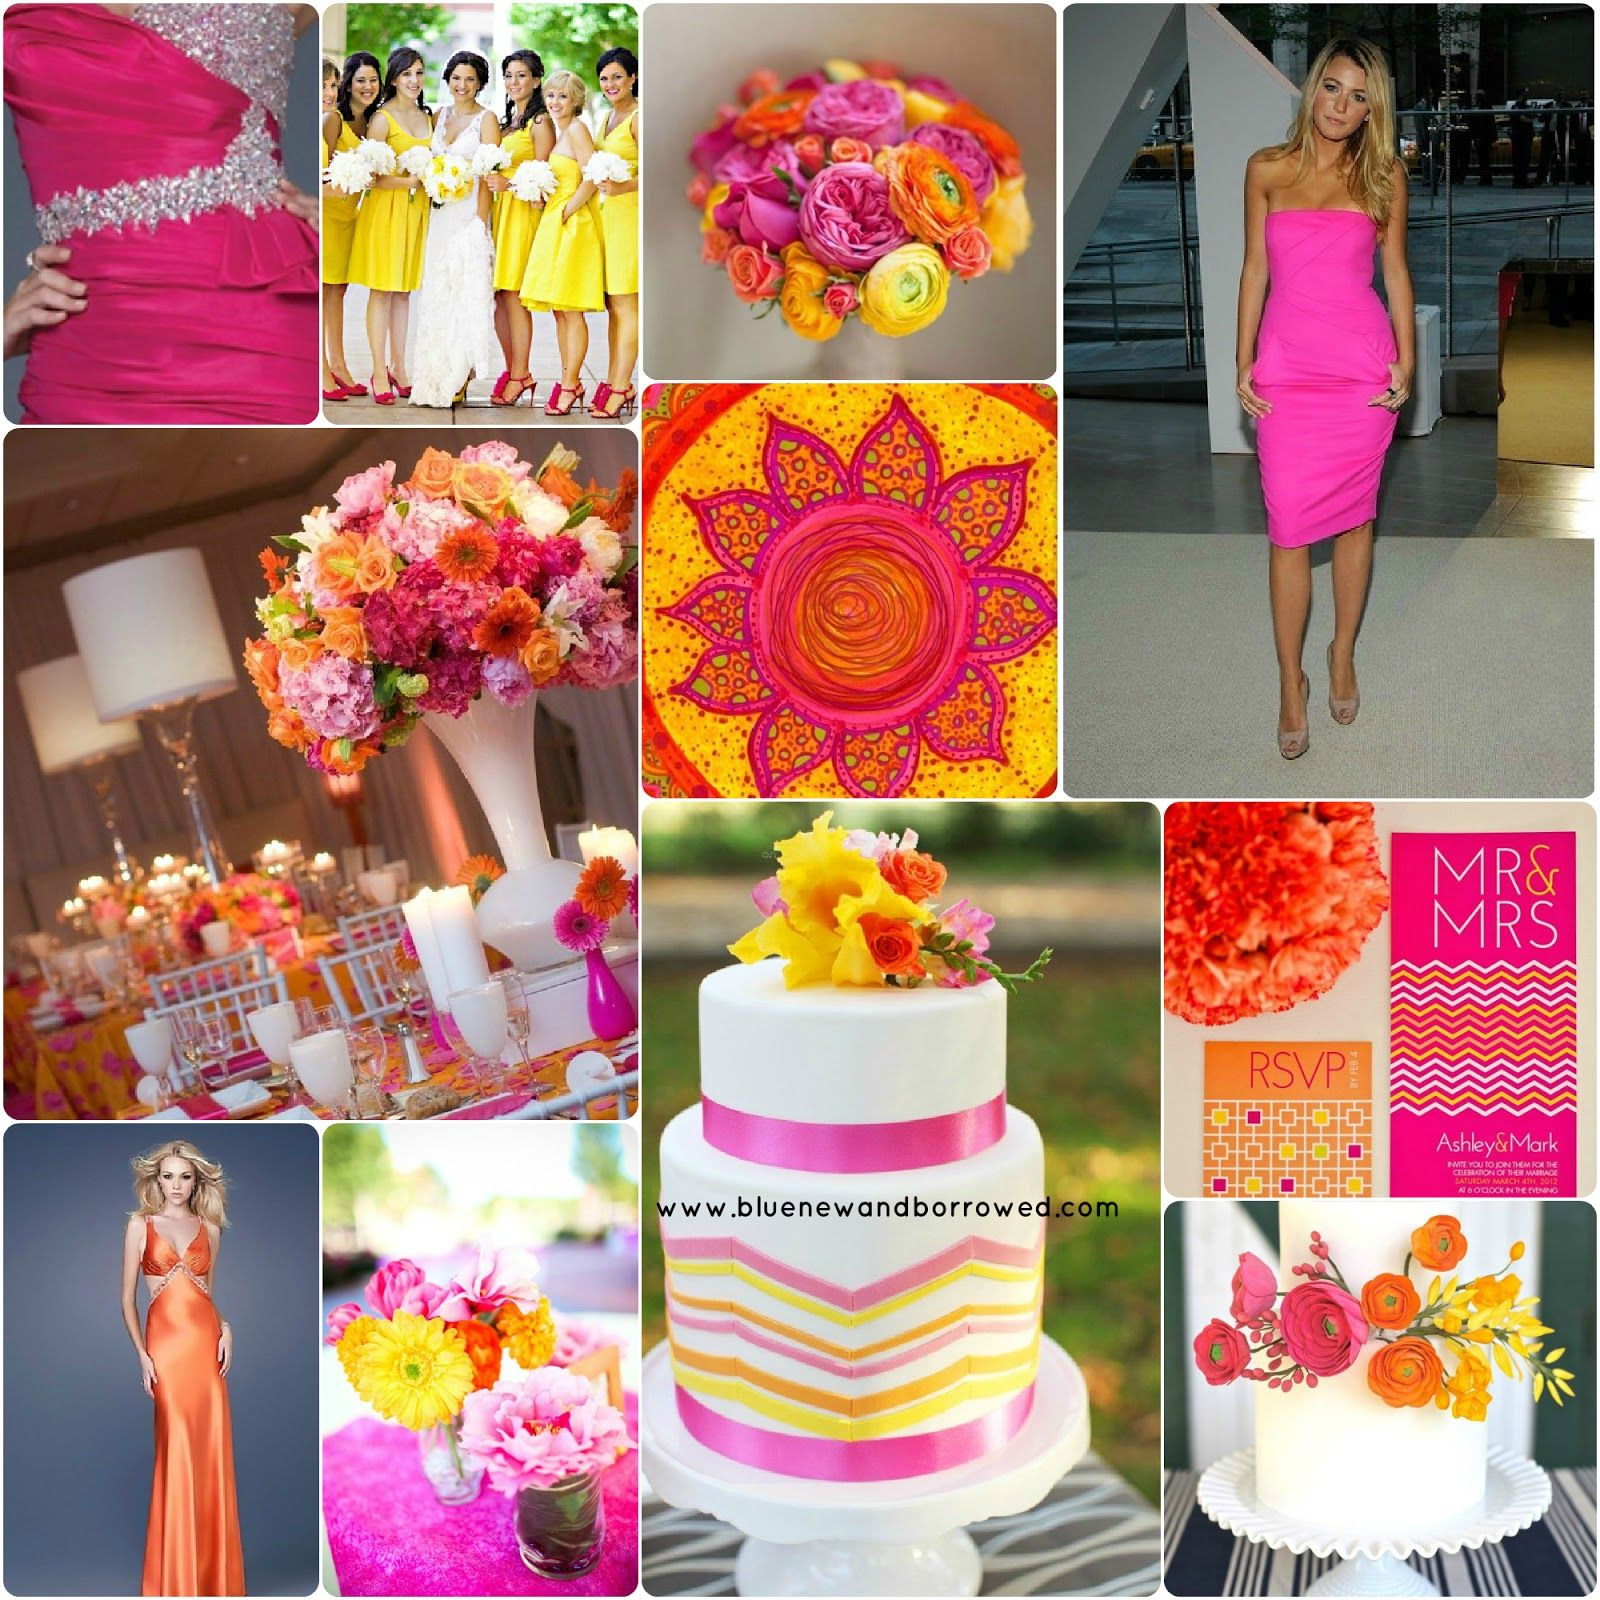 Wedding colors hot pink yellow and tangerine wedding for Pink and yellow wedding theme ideas